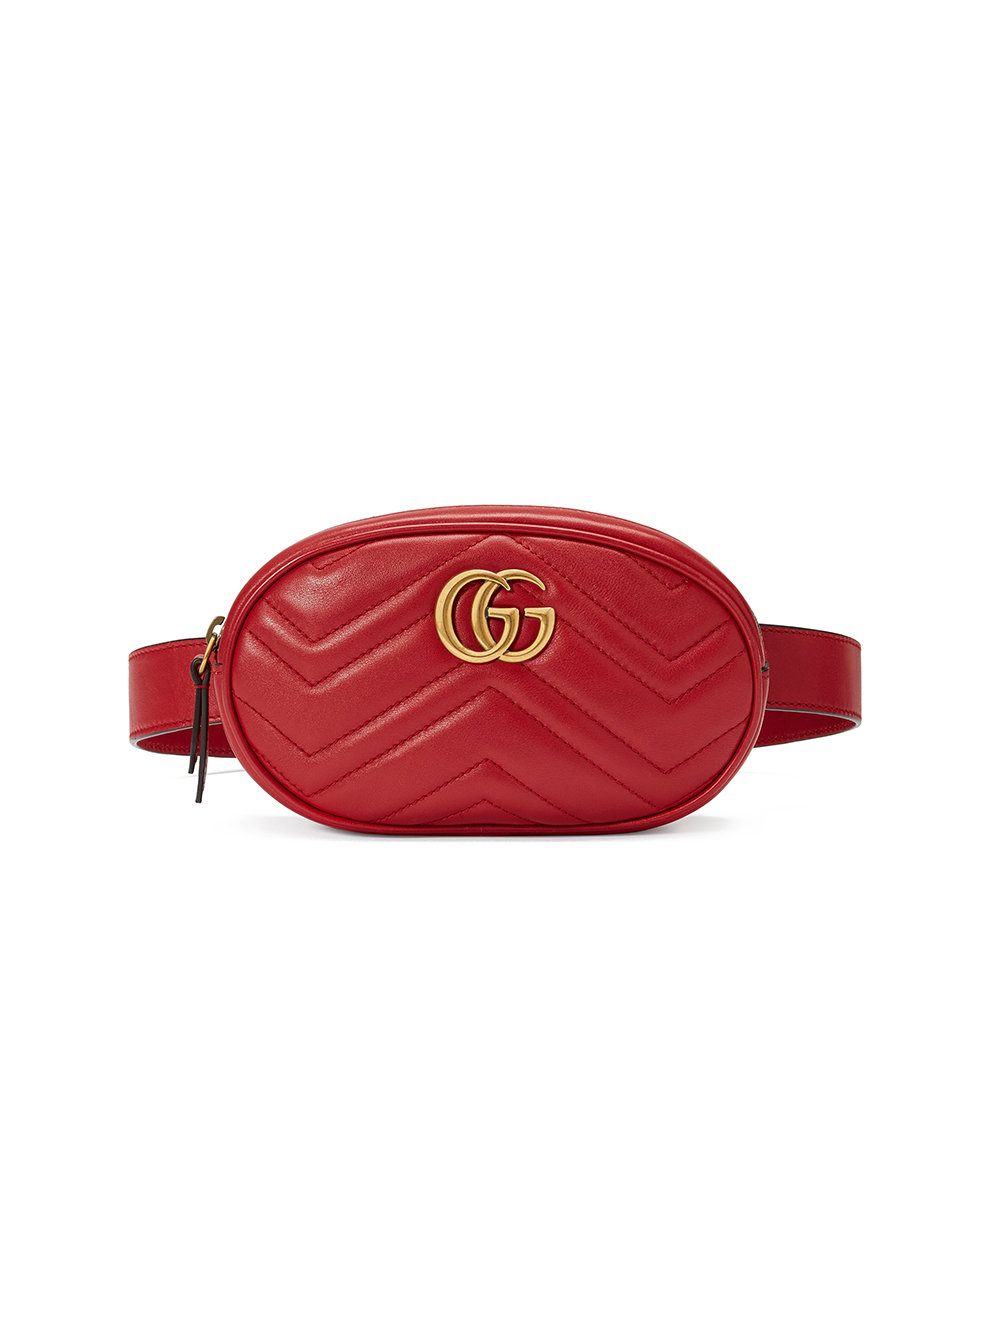 1. The belt bag - Add a splash of colour and go hands free. £795, Farfetch